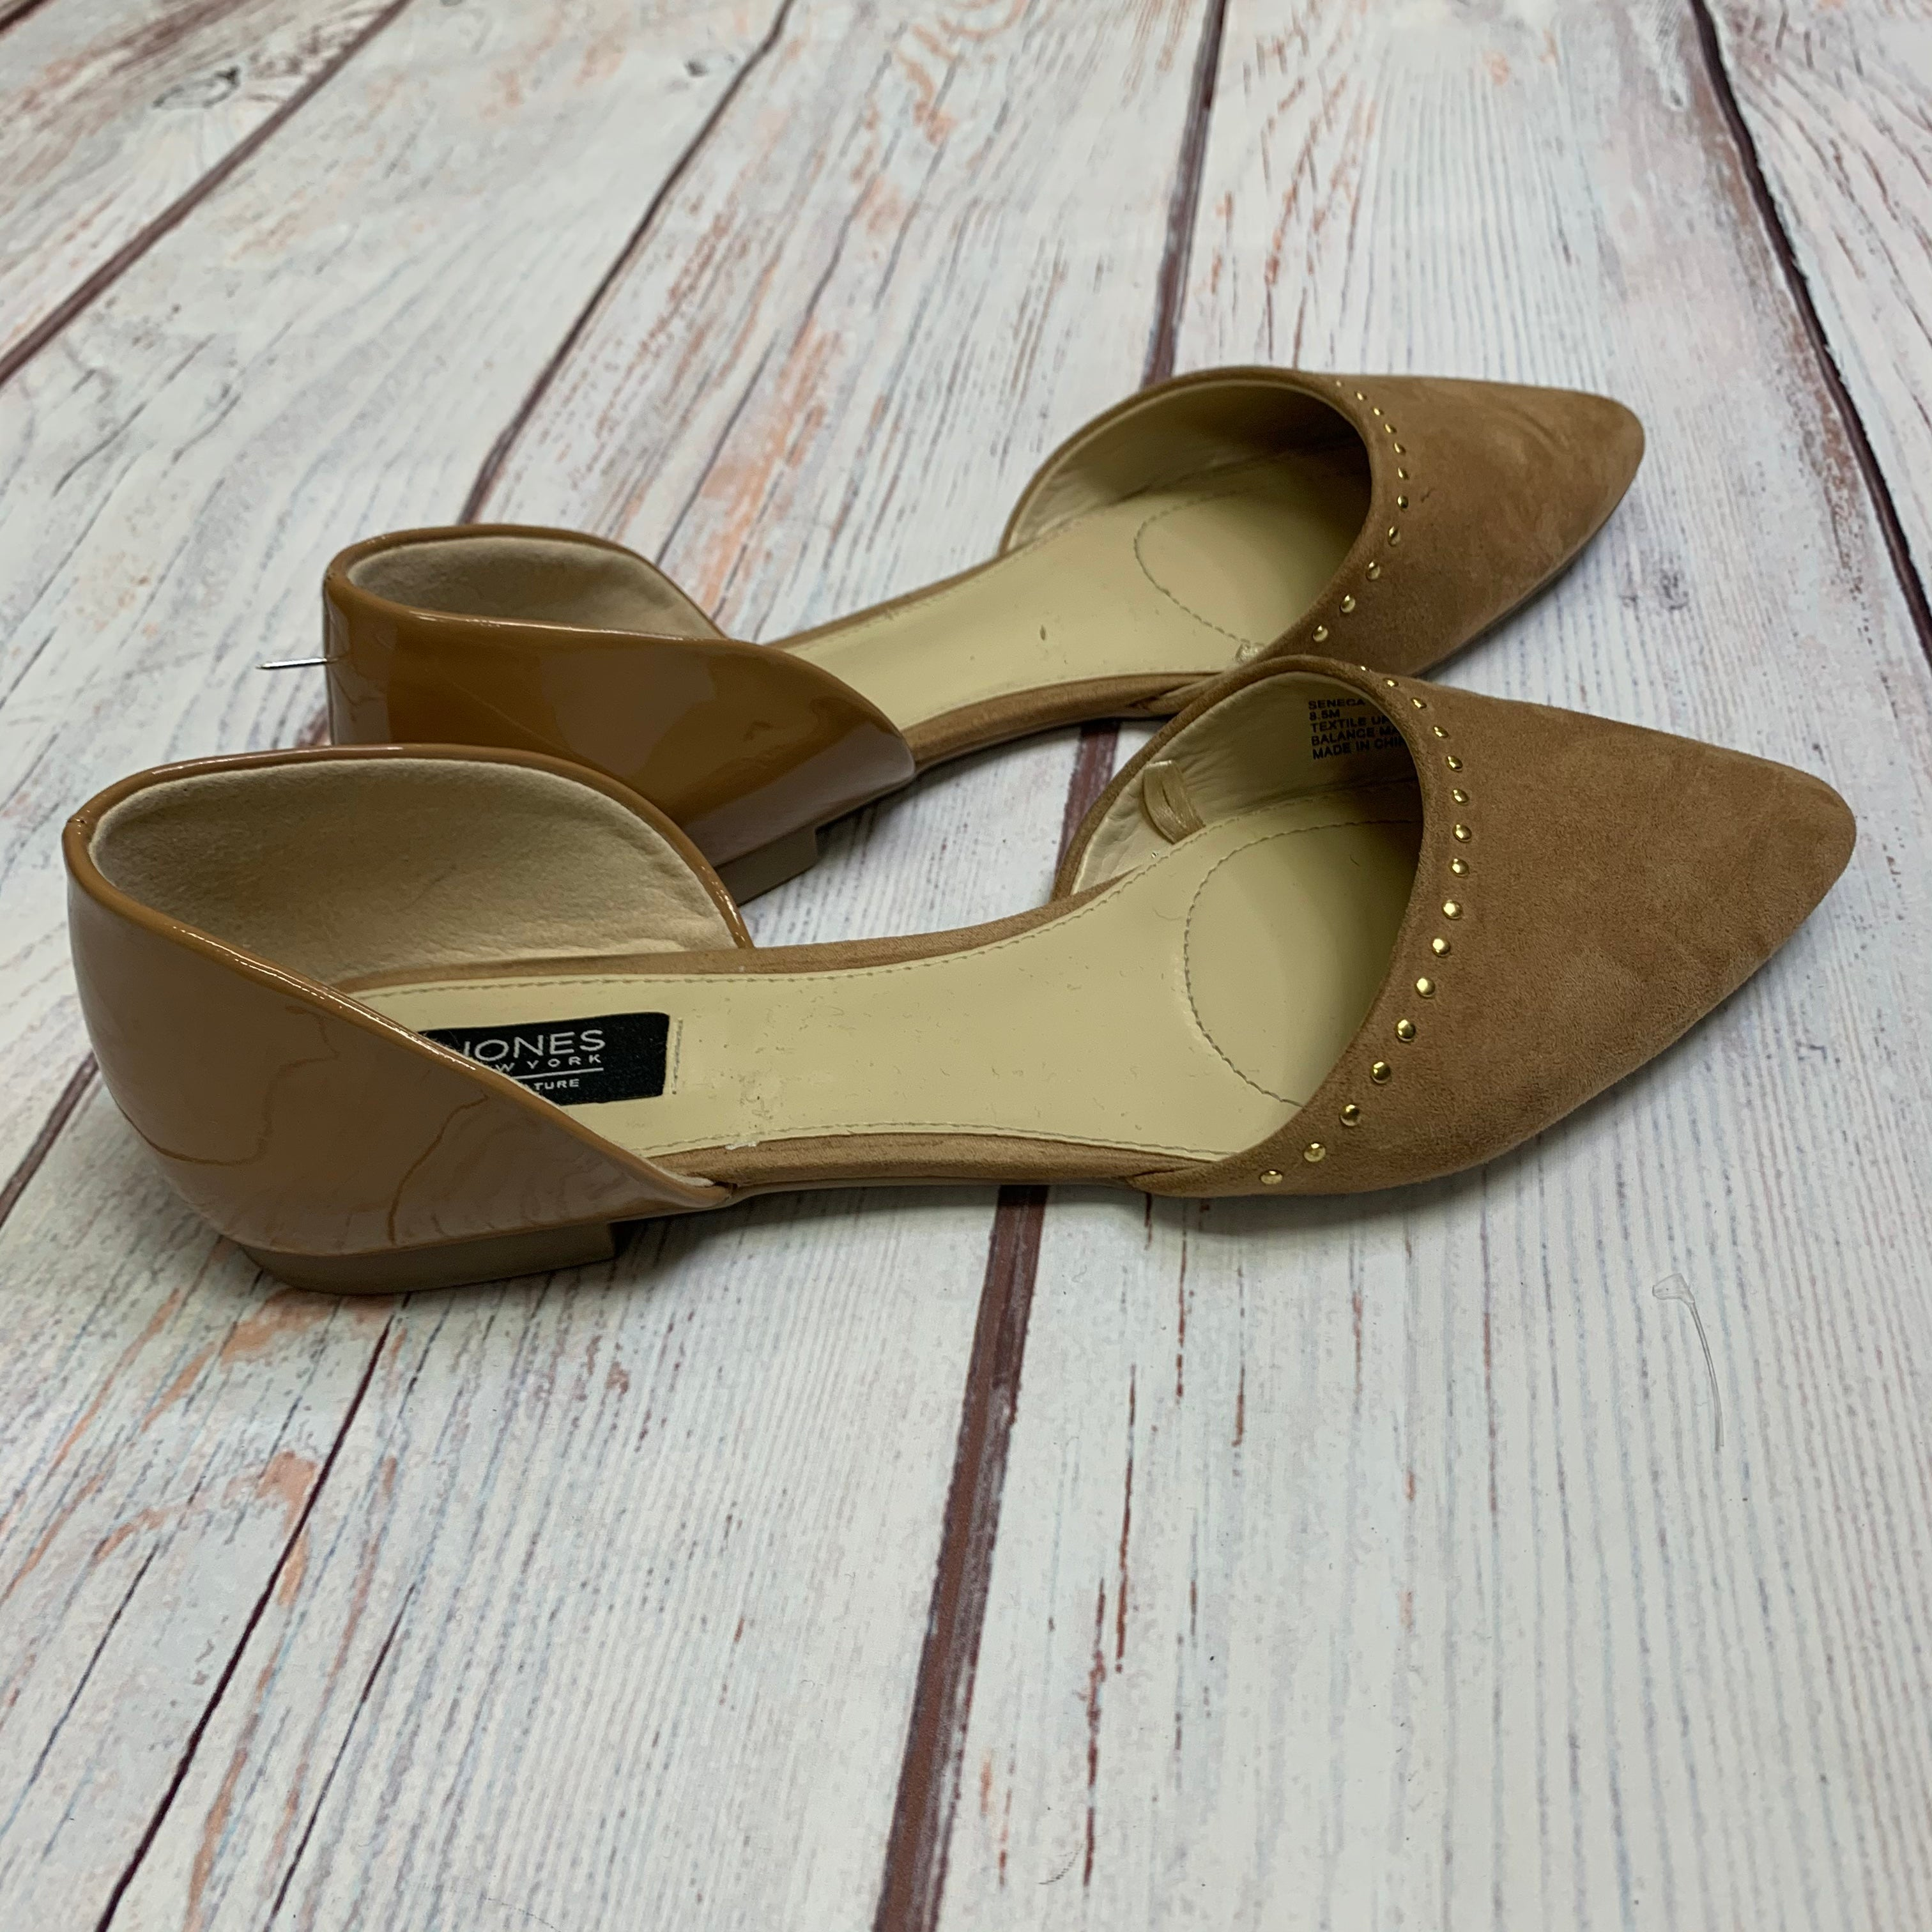 Shoes Flats By Jones New York  Size: 8.5 - BRAND: JONES NEW YORK <BR>STYLE: SHOES FLATS <BR>COLOR: TAN <BR>SIZE: 8.5 <BR>OTHER INFO: PEN MARK NOTED IN PRICE <BR>SKU: 257-257100-1022